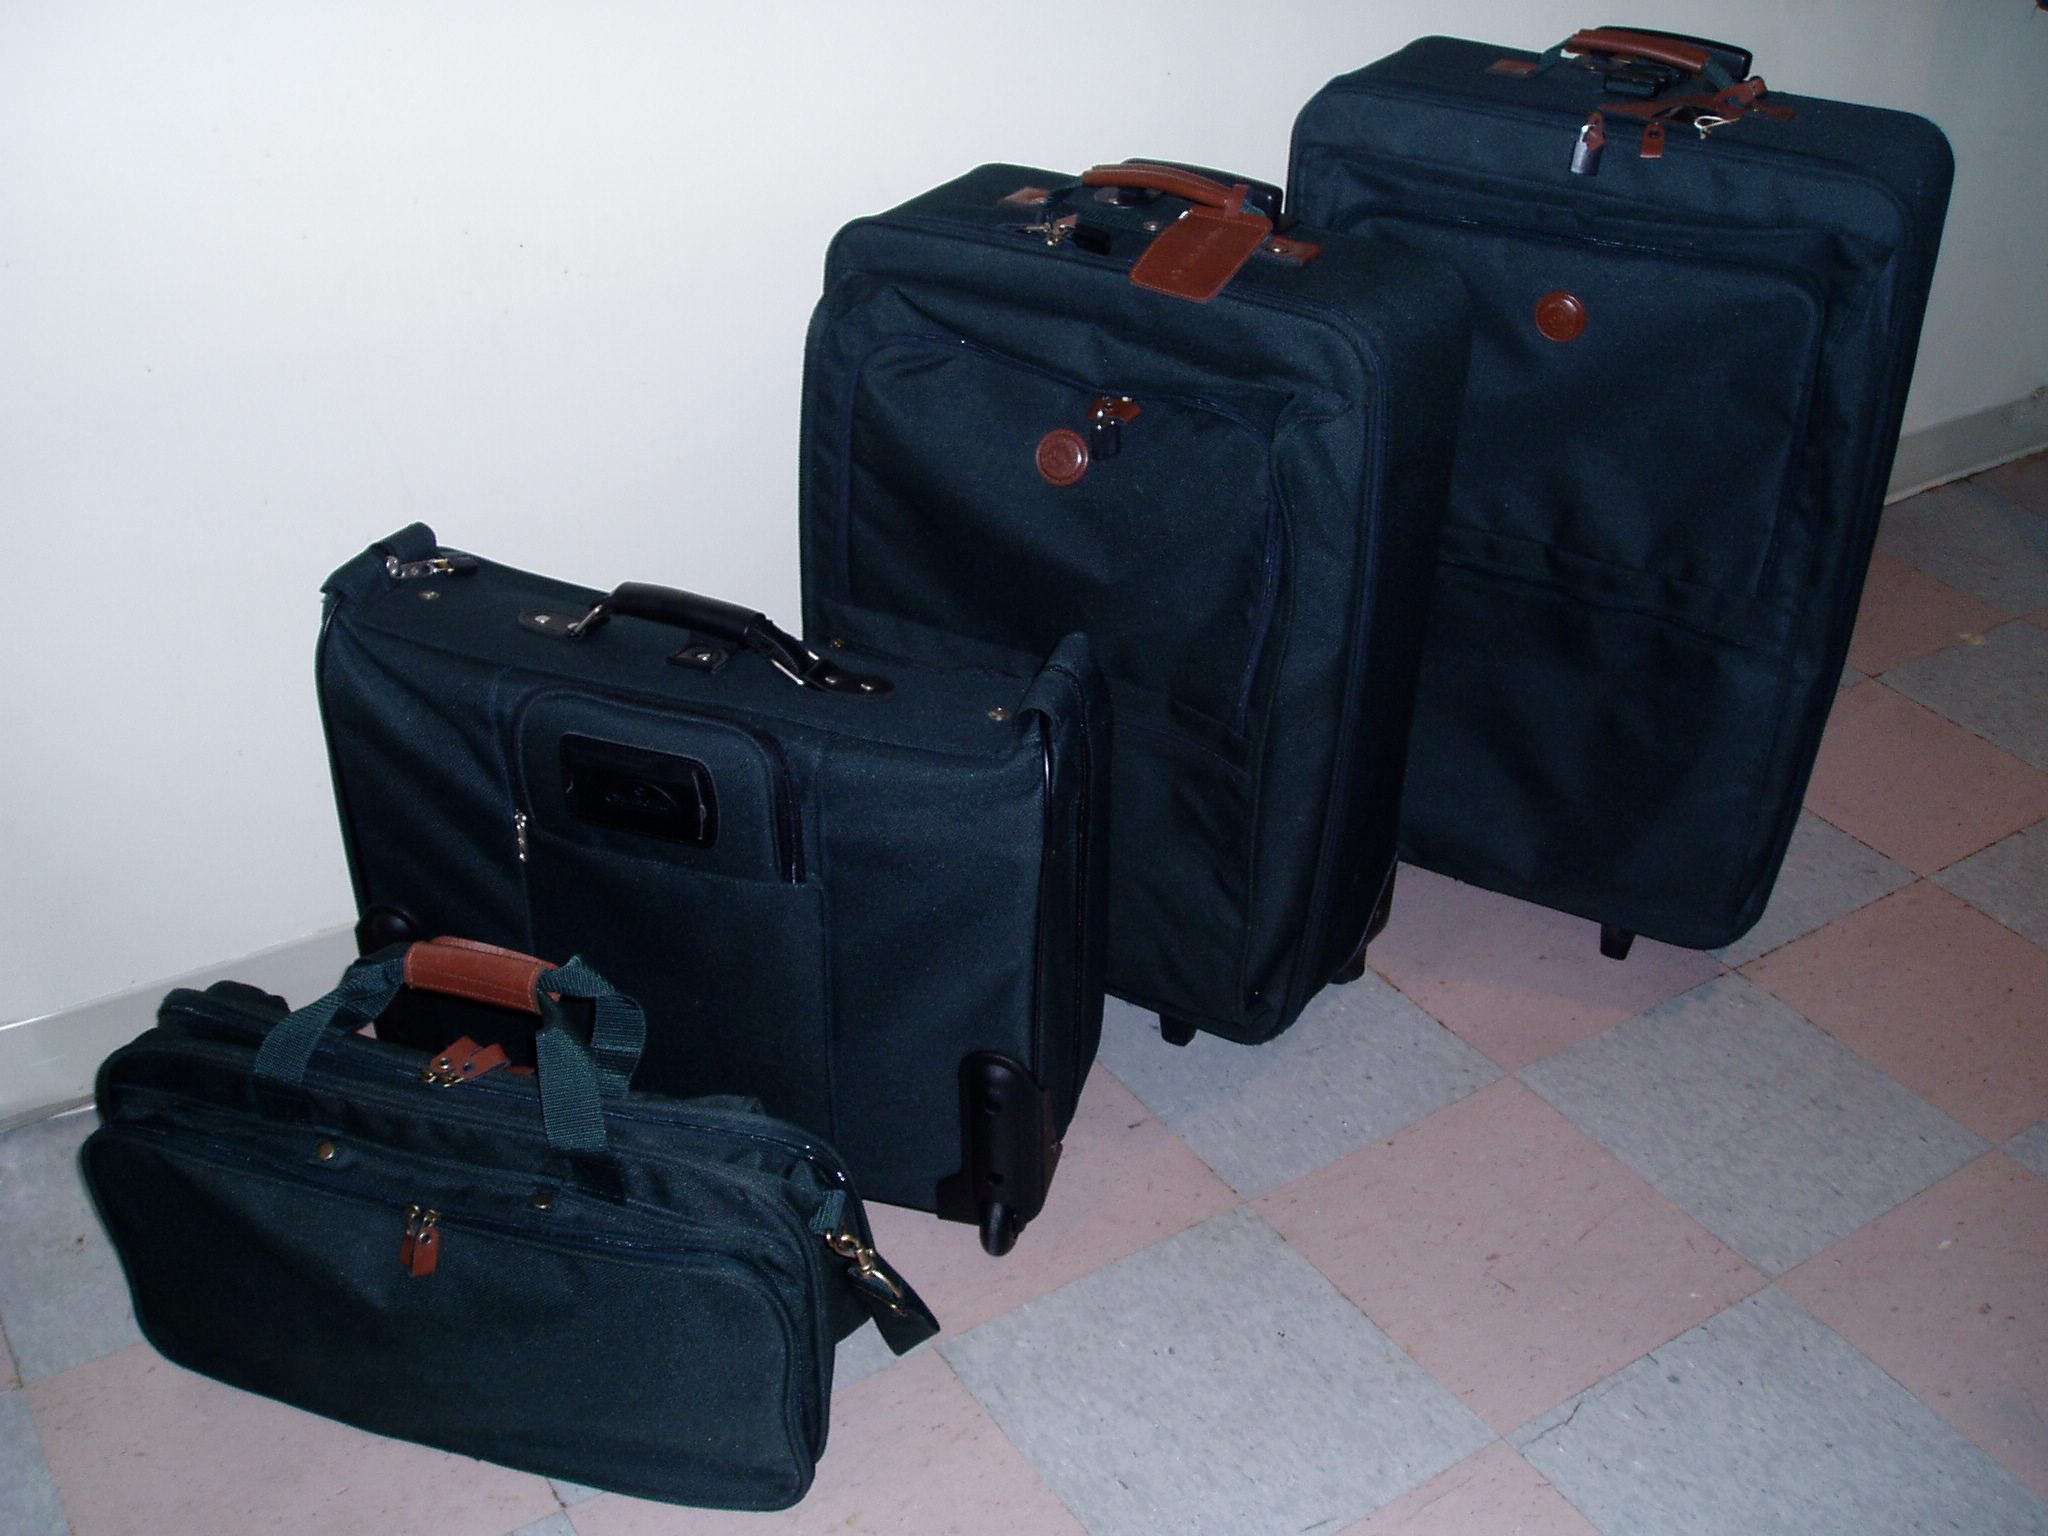 Set of Traveling Suit Cases